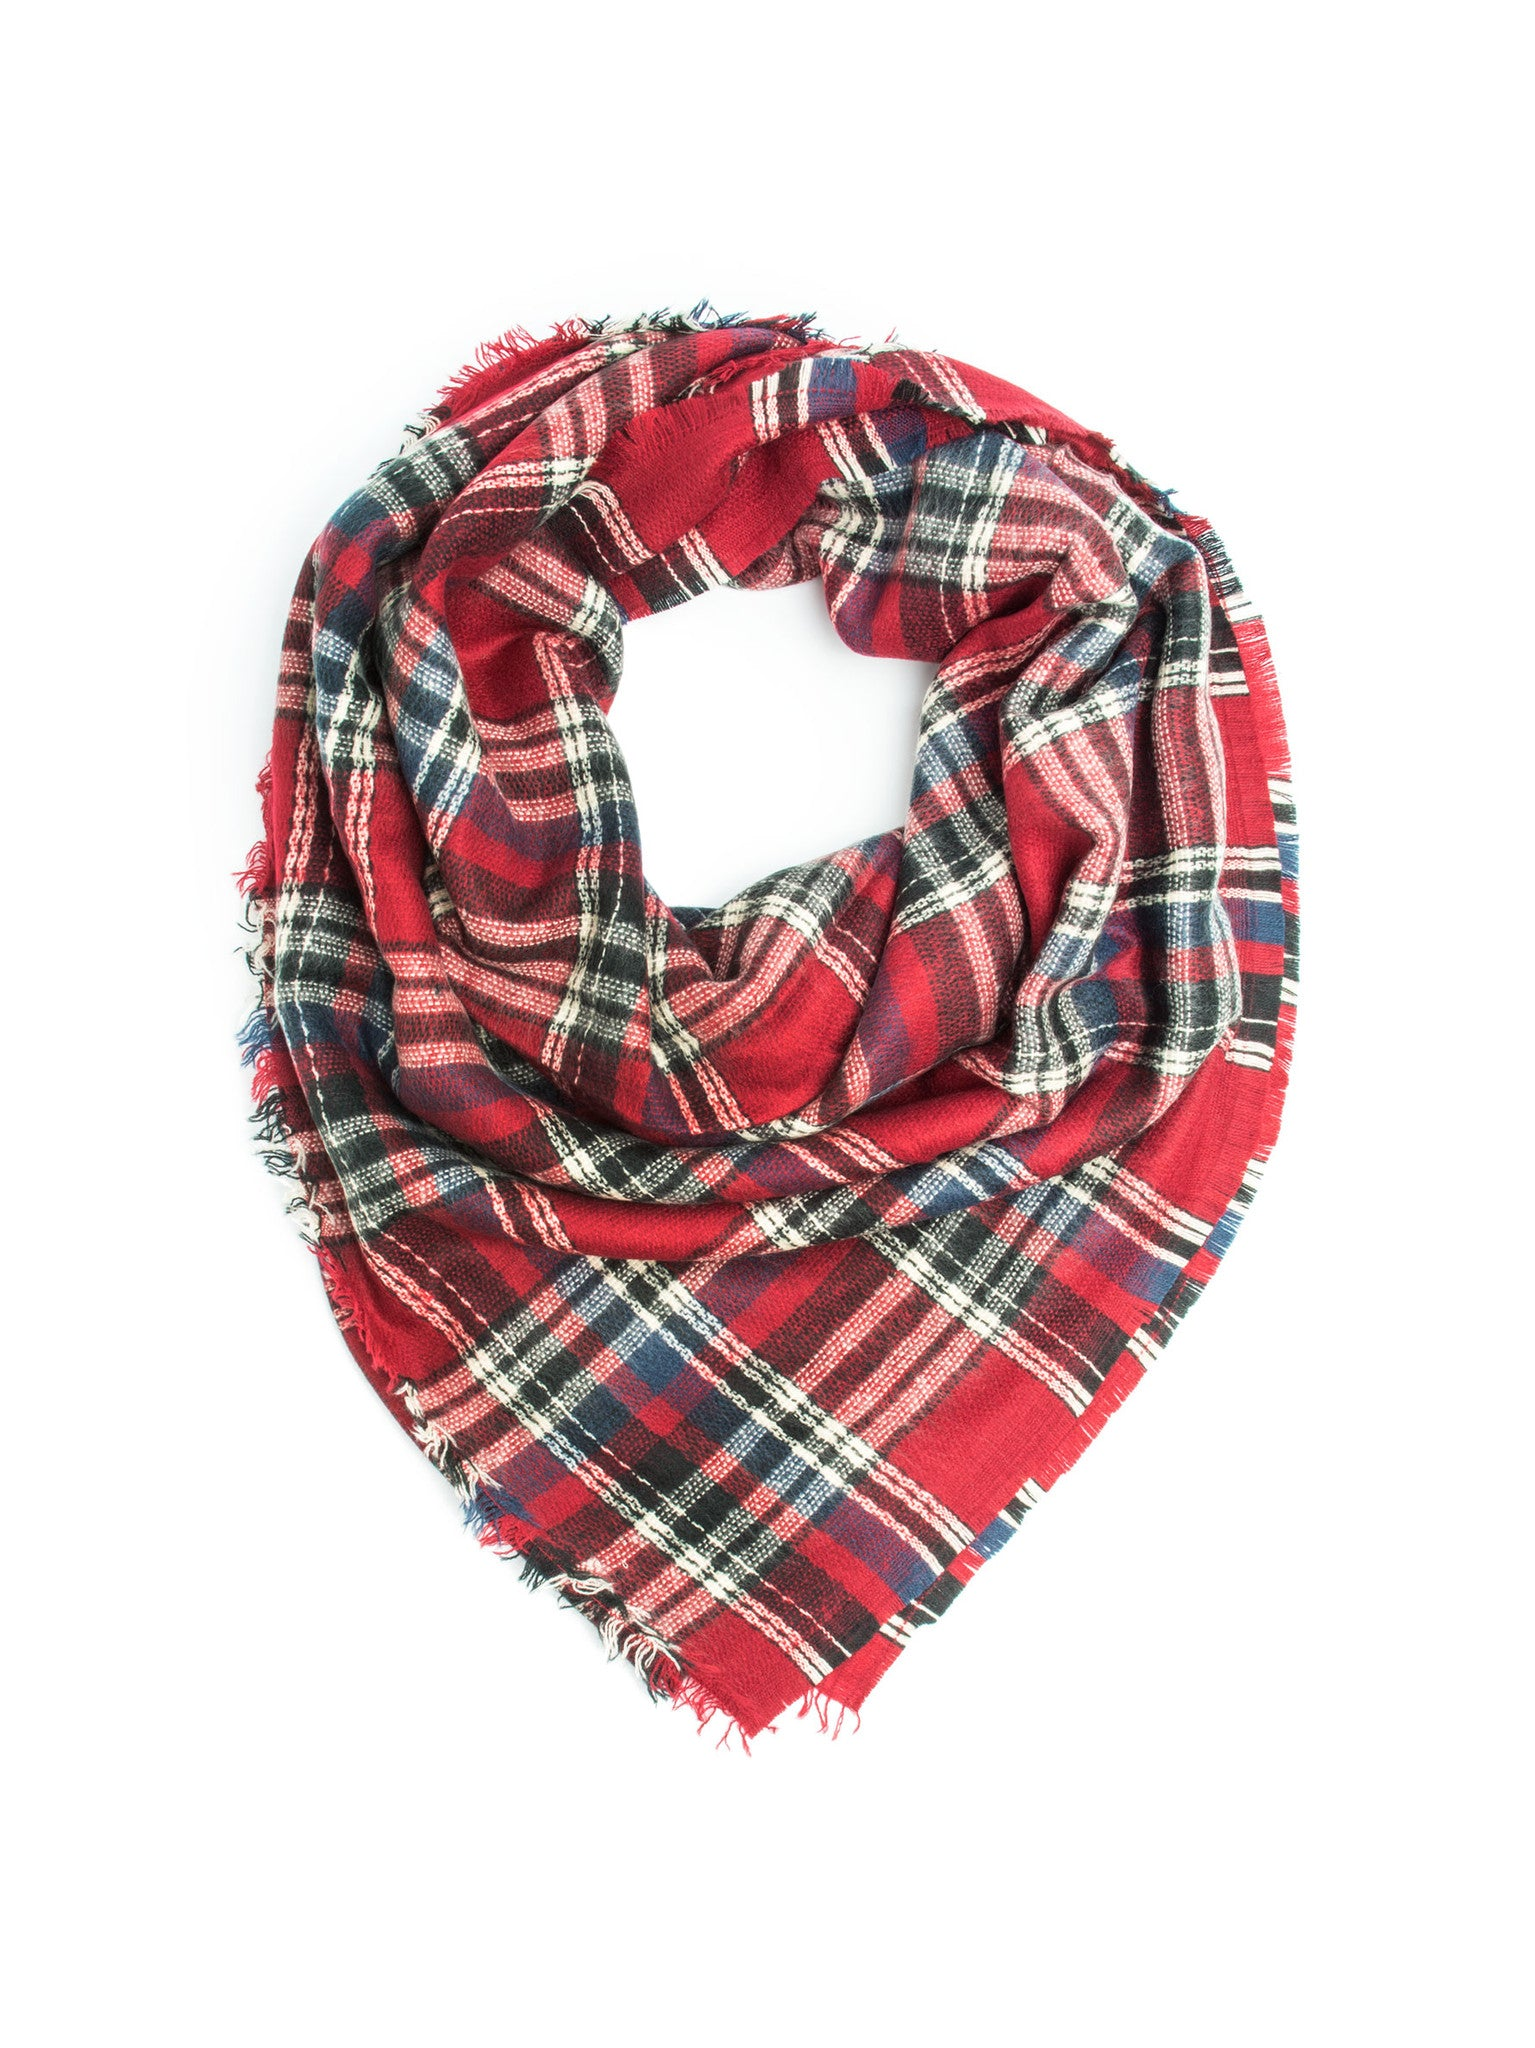 Scarves - Carrie, Oversize Plaid Blanket Scarf, Soft Warm Winter Scarf or Shawl -(Red/Cream/Navy) Bohomonde  - 1